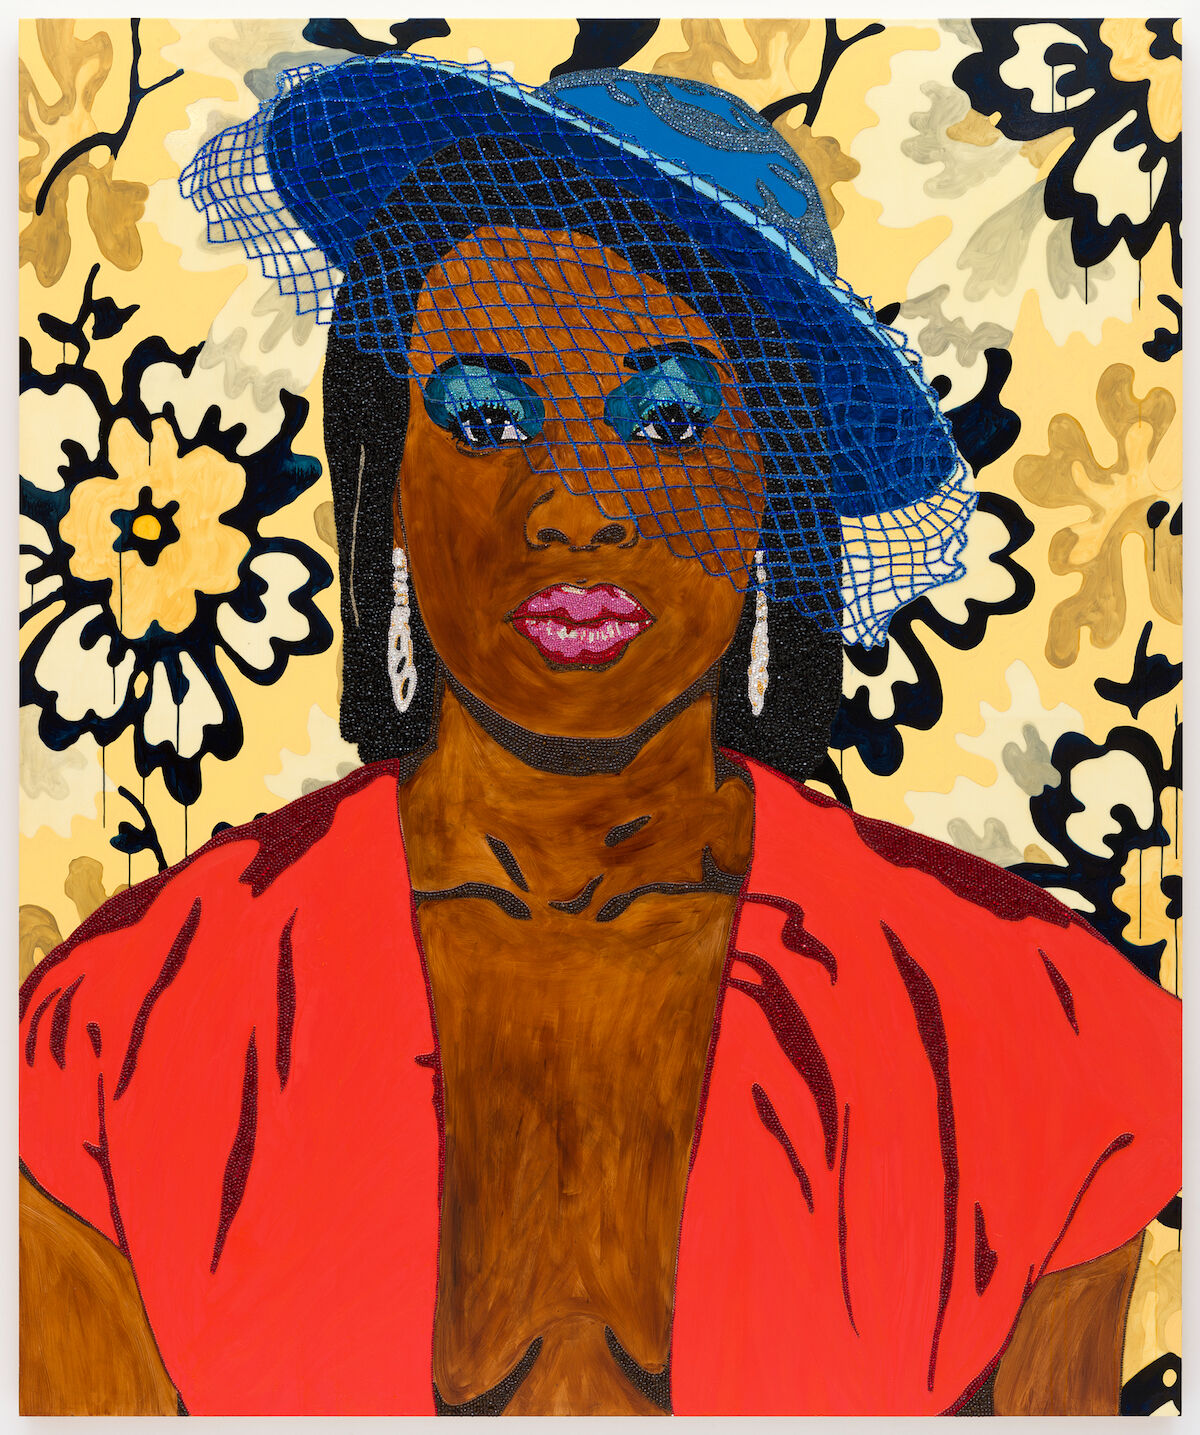 Mickalene Thomas, Qusuquzah, une très belle négresse 1, 2011. San Francisco Museum of Modern Art, purchase, by exchange, through a gift of Peggy Guggenheim. © Mickalene Thomas / Artists Rights Society (ARS), New York. Photo by Katherine Du Tiel.